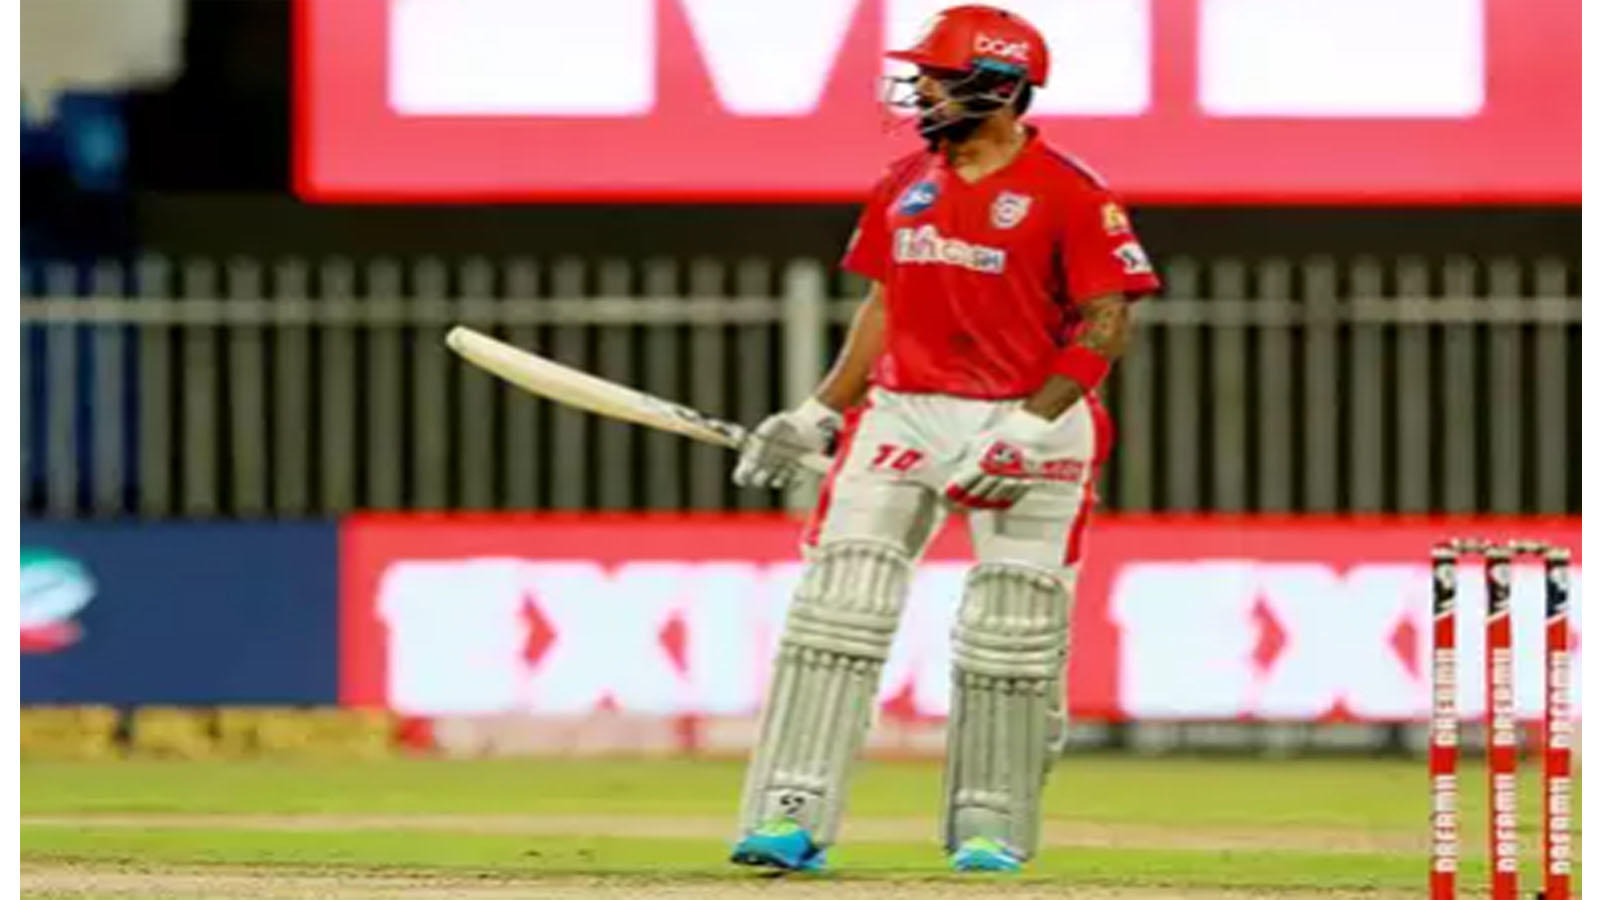 ipl-2020-one-of-our-top-four-has-to-finish-off-games-says-kxip-skipper-kl-rahul